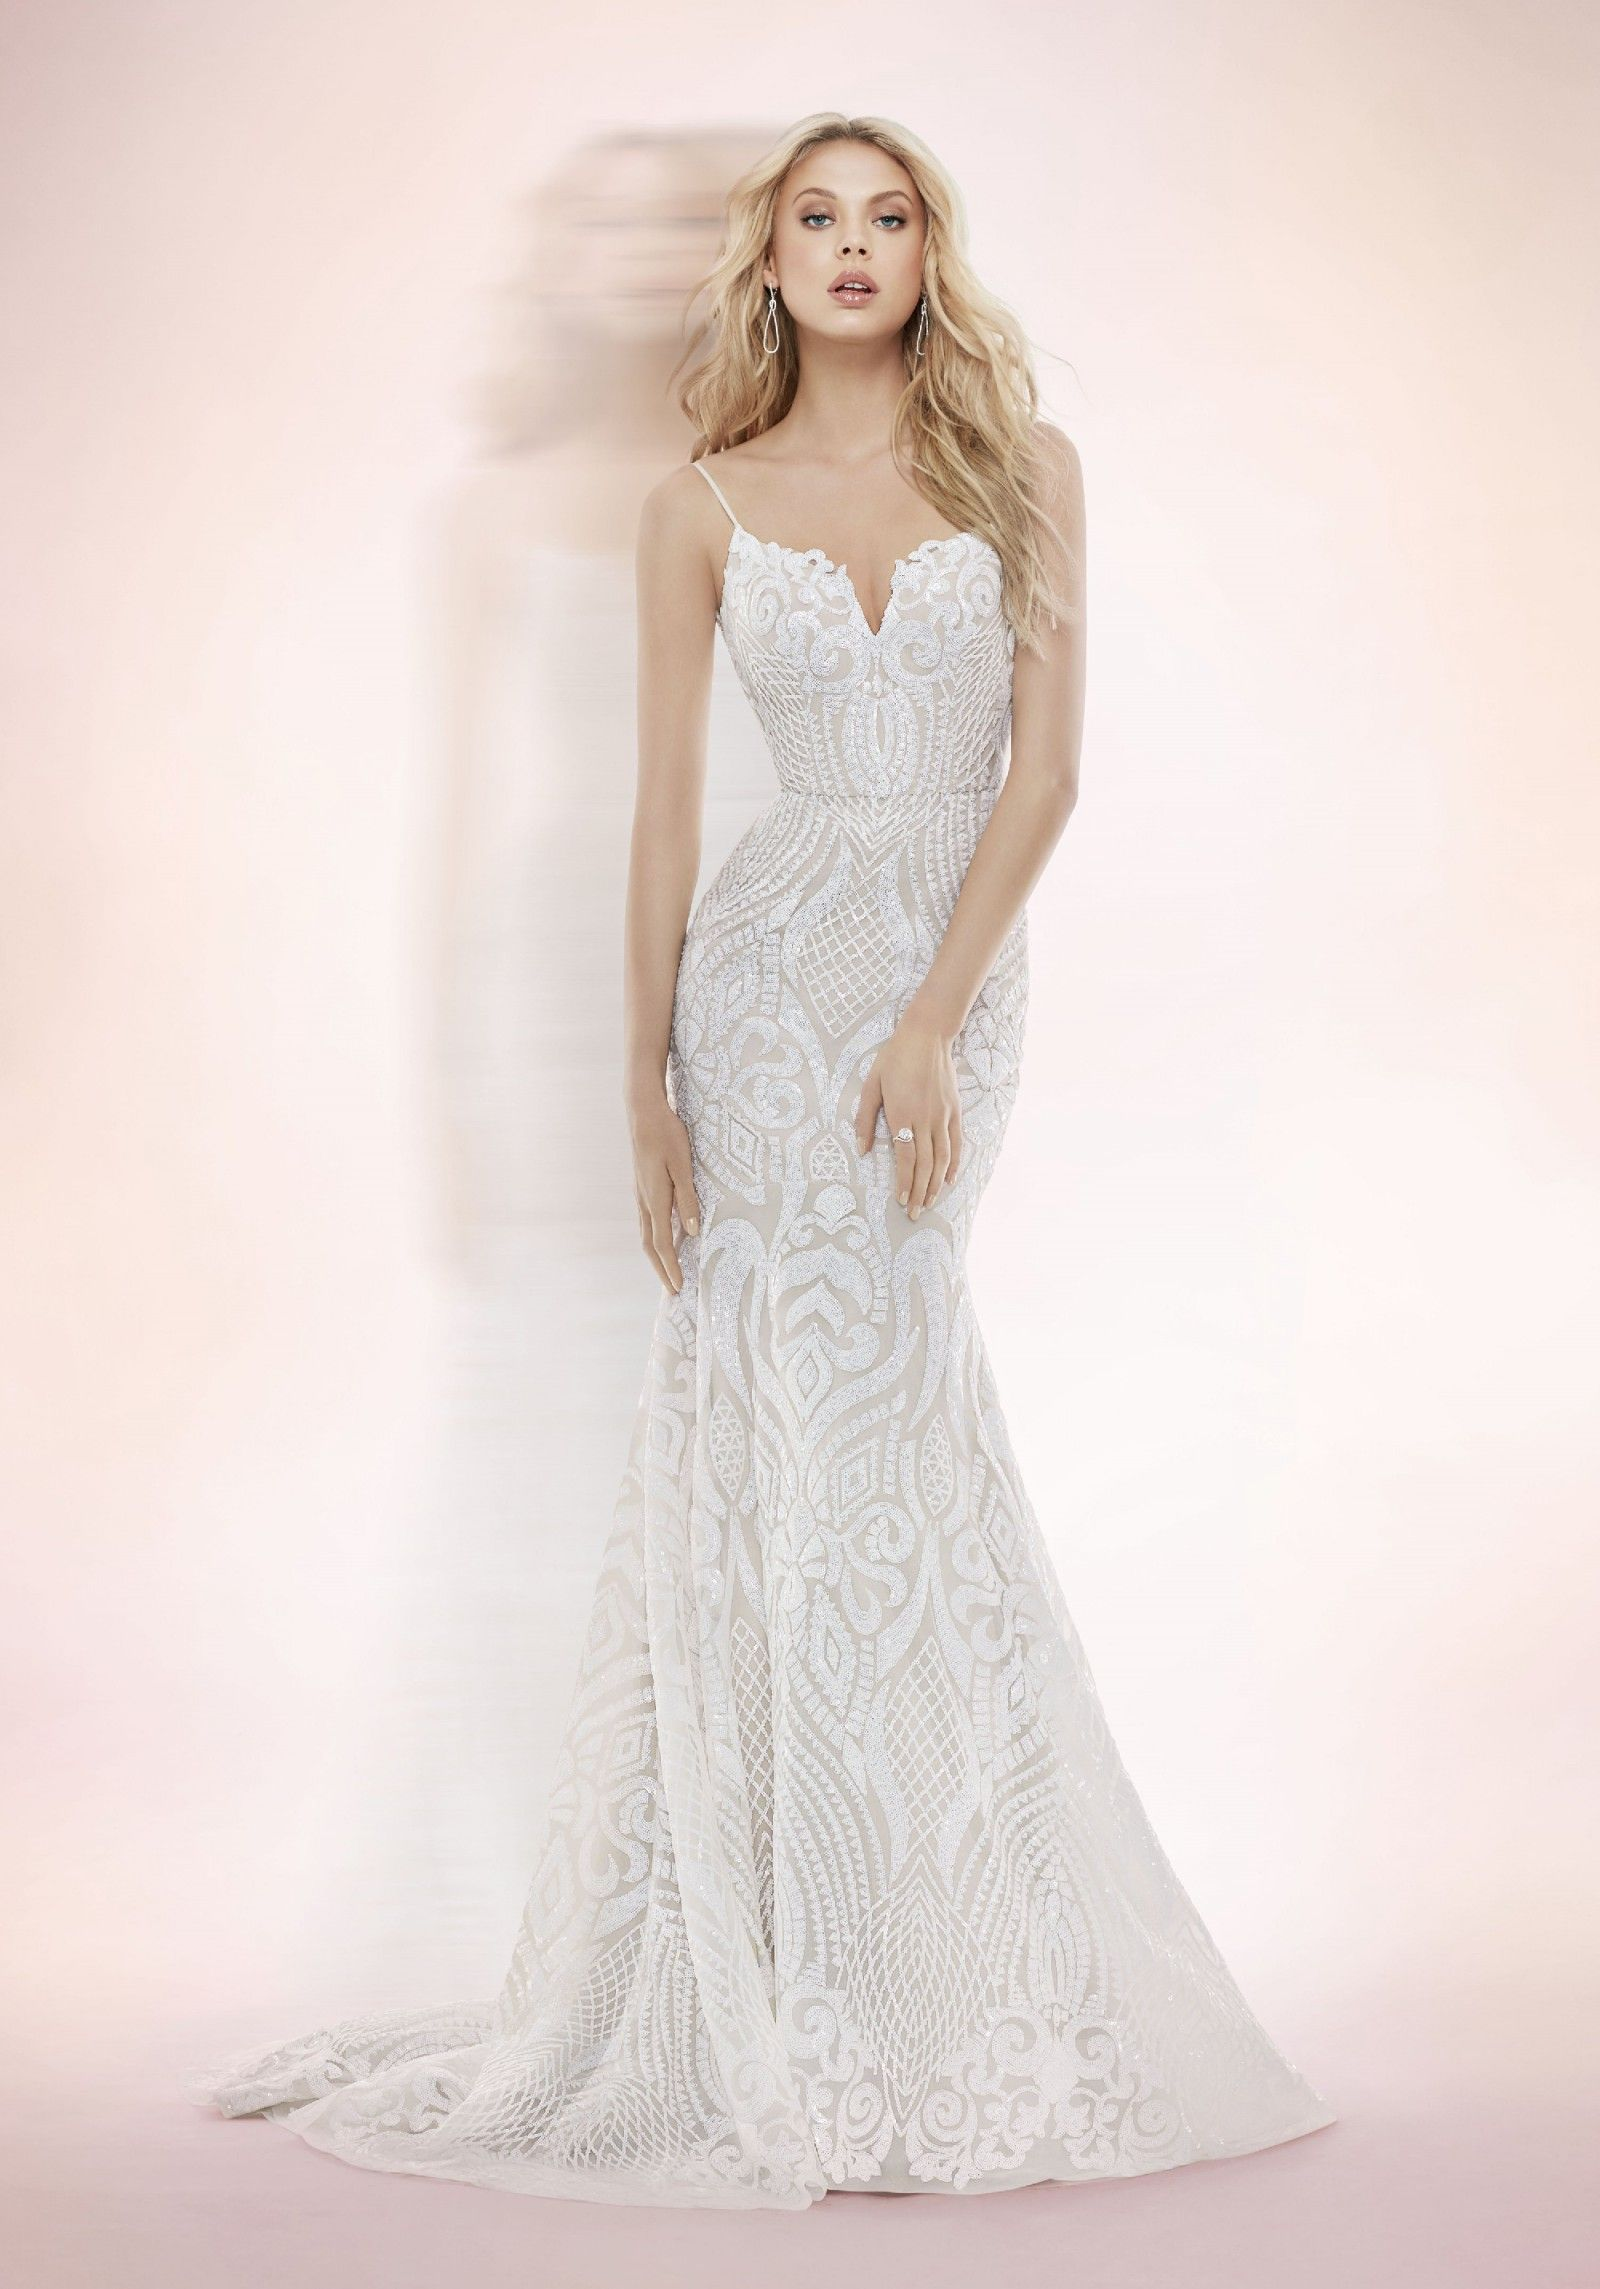 275766bc0d29 Hayley Paige West gown -1710 Second Hand Wedding Dress on Sale 50% Off